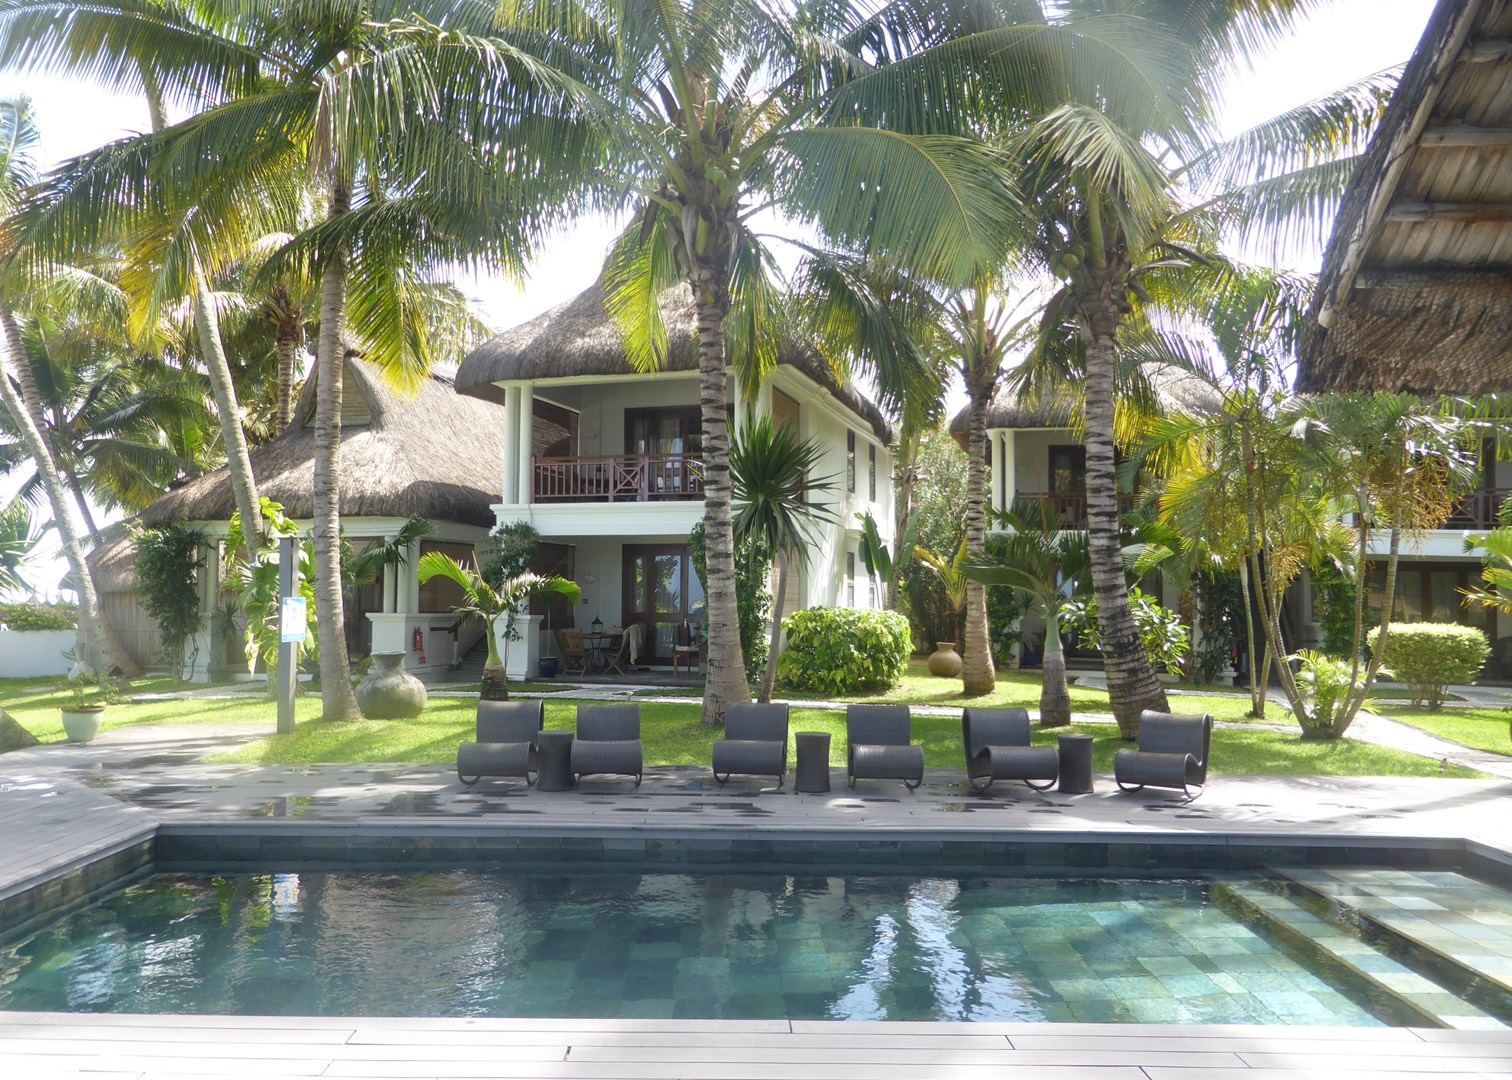 Sakoa boutique hotel hotels in mauritius audley travel for Boutique hotel resort